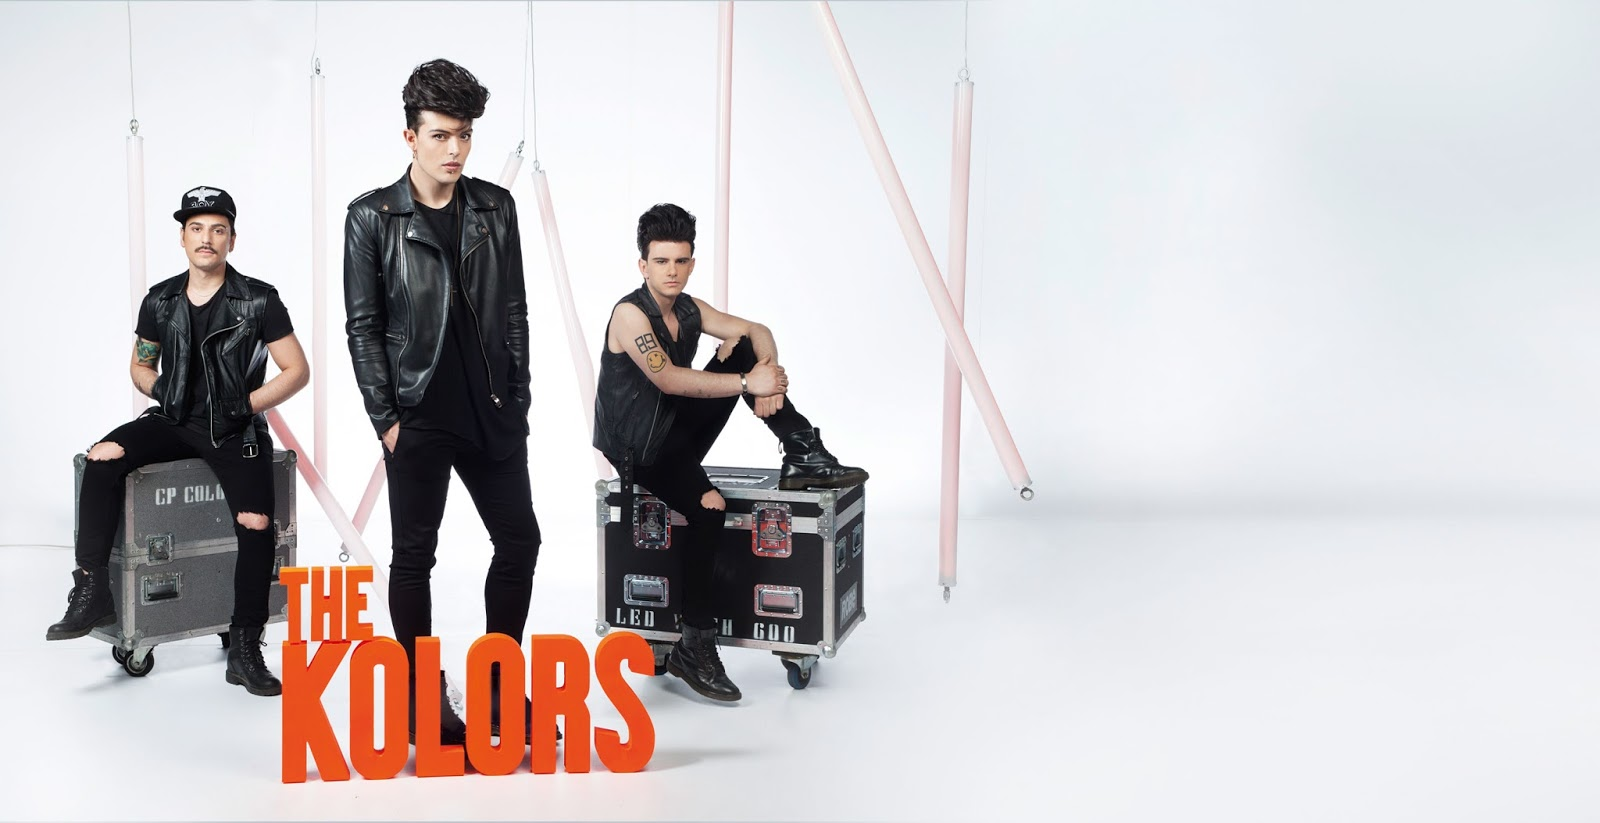 As Cool As Britney - The Kolors: testo, video e traduzione